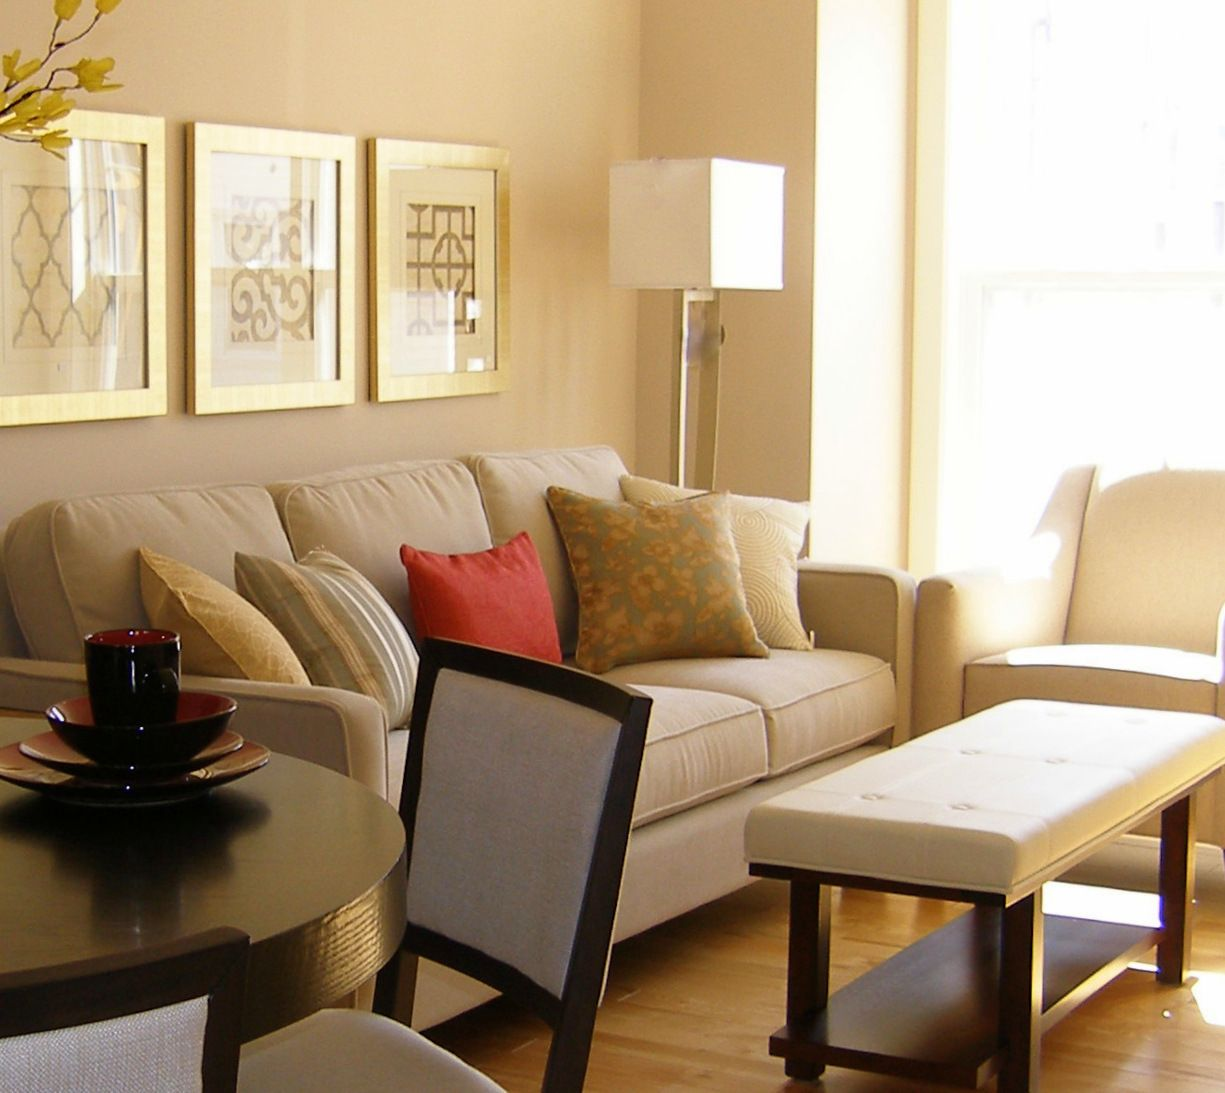 Pin On Interior Design And Decorating By Moving Designz